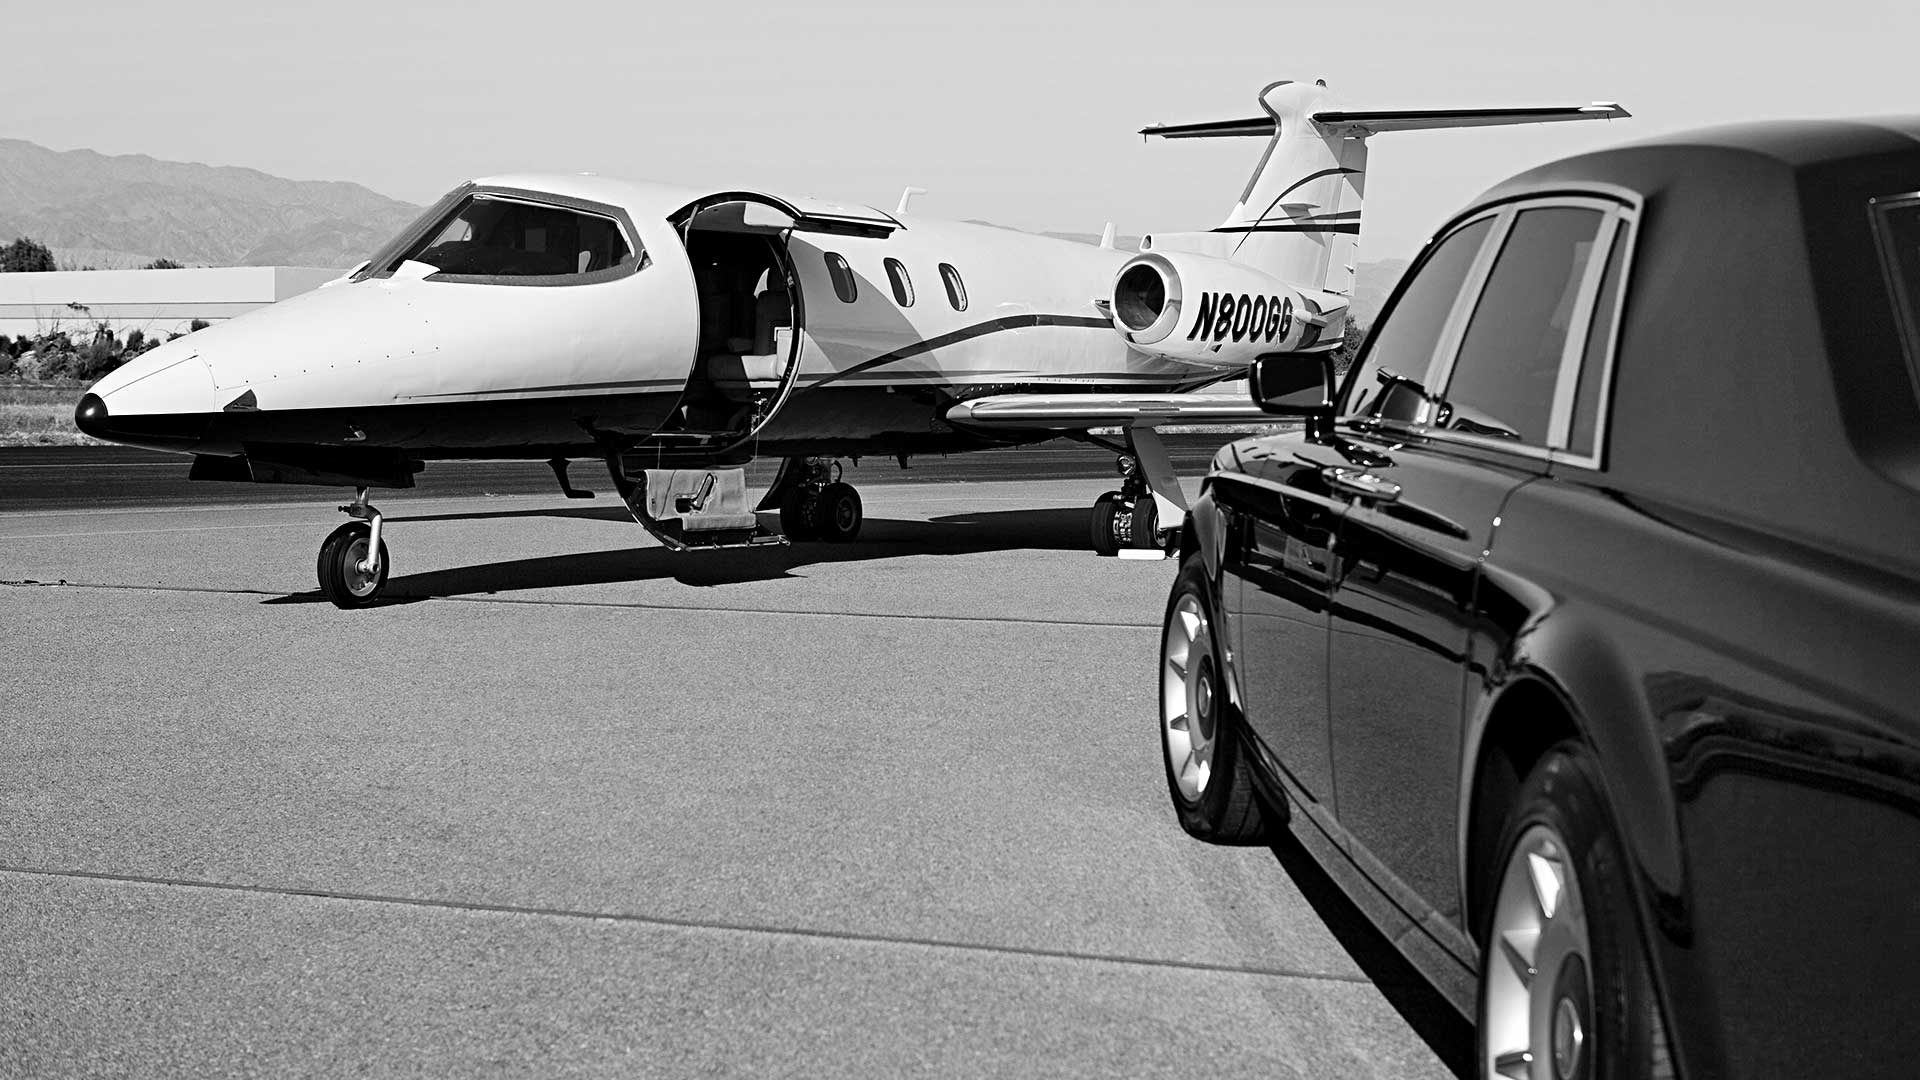 Airport Pick-up Limousine Service (black limo)